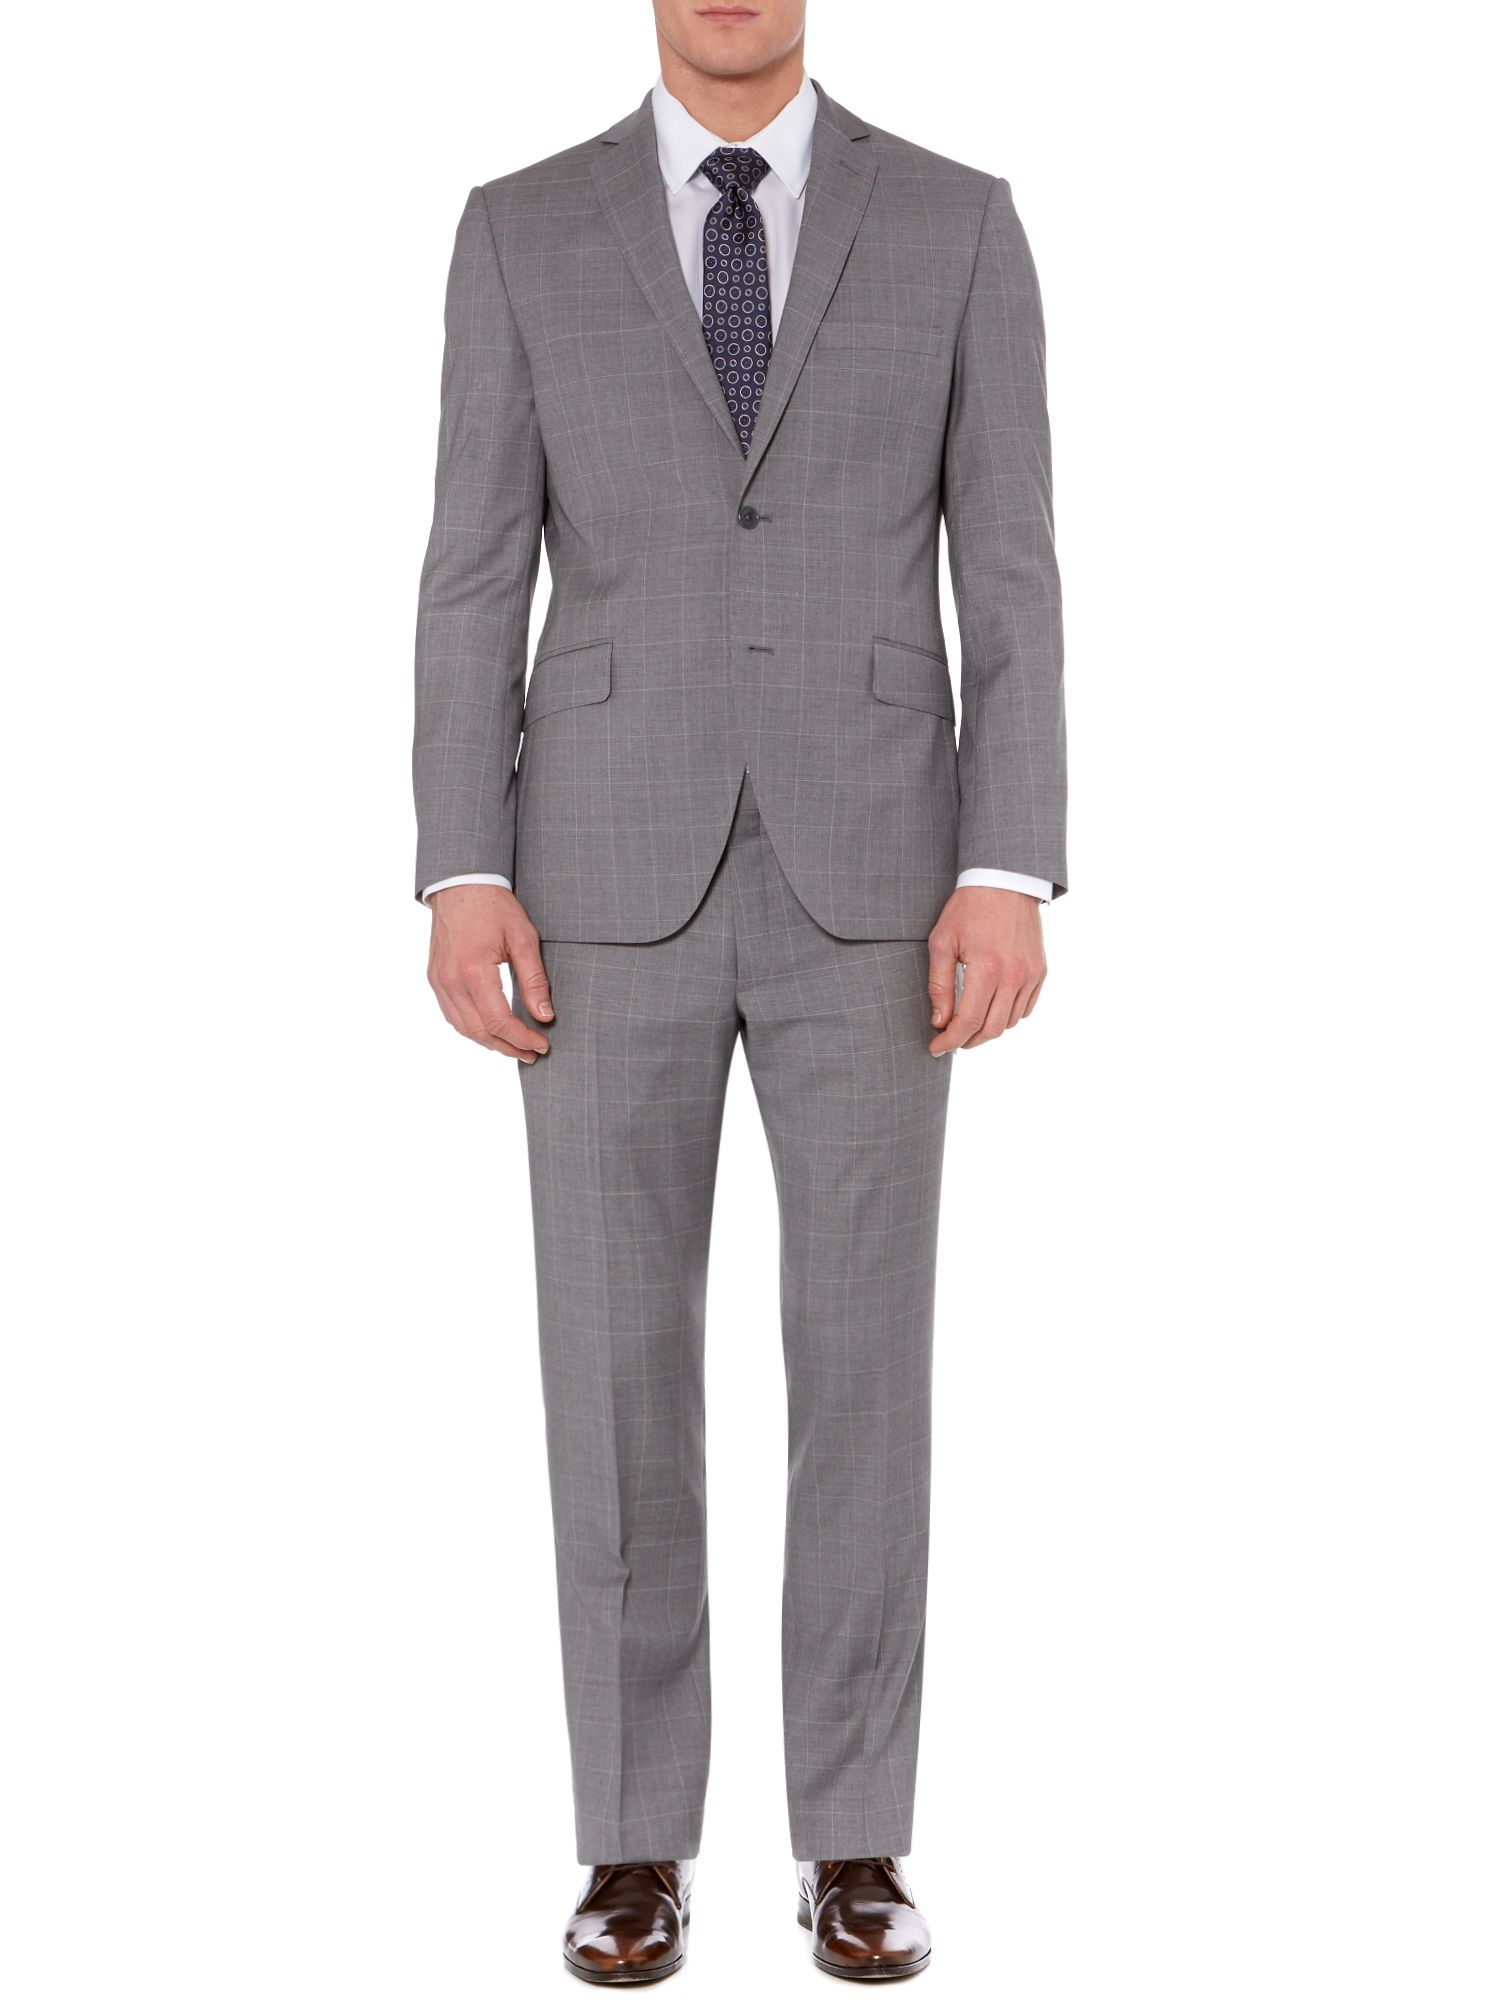 Lambo windowpane check suit jacket